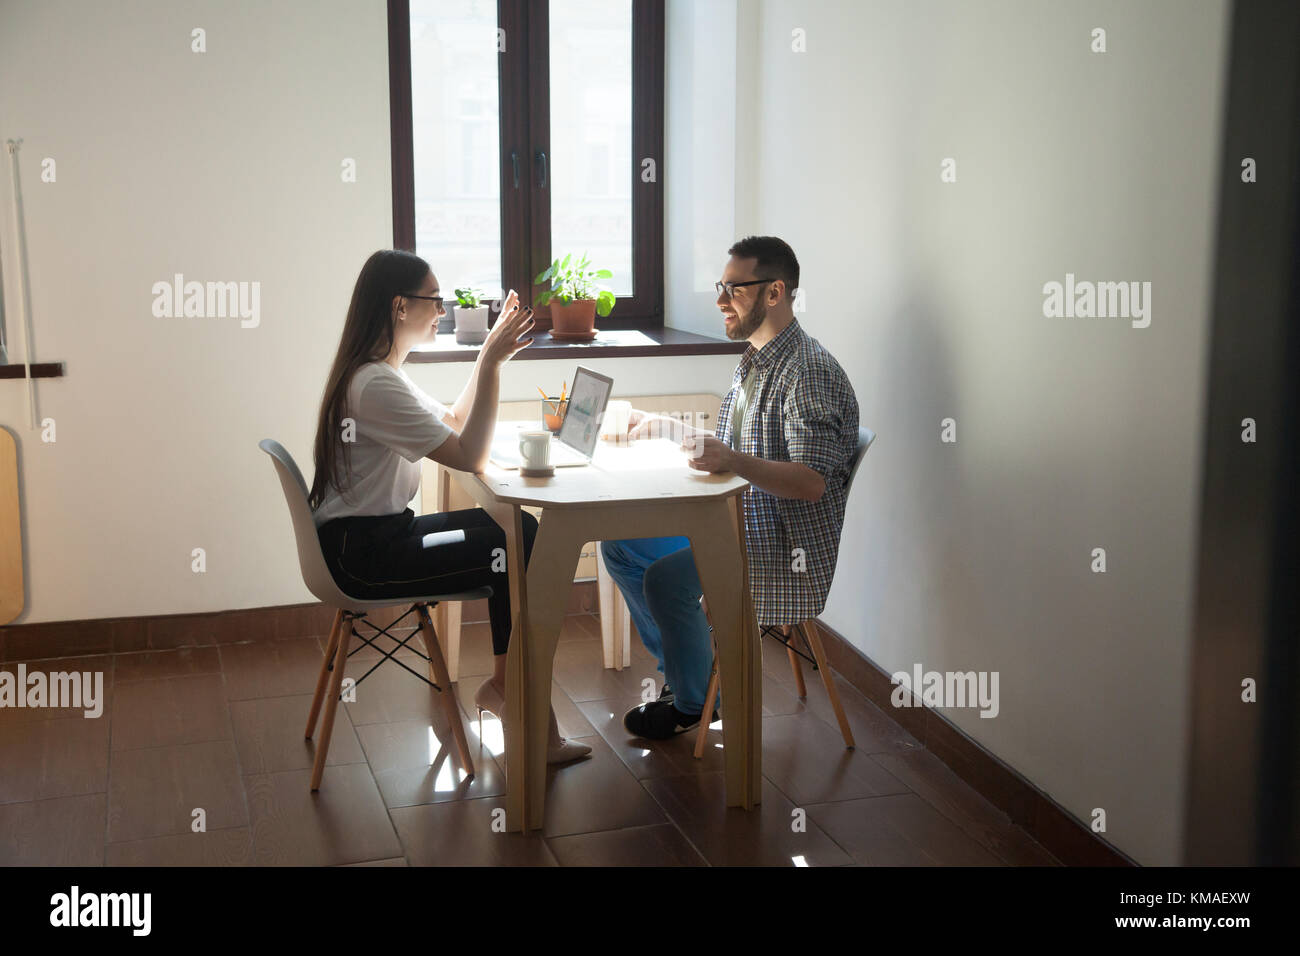 Coworkers sitting at meeting and discussing new concept in work. Two smiling millennial employees talking about - Stock Image